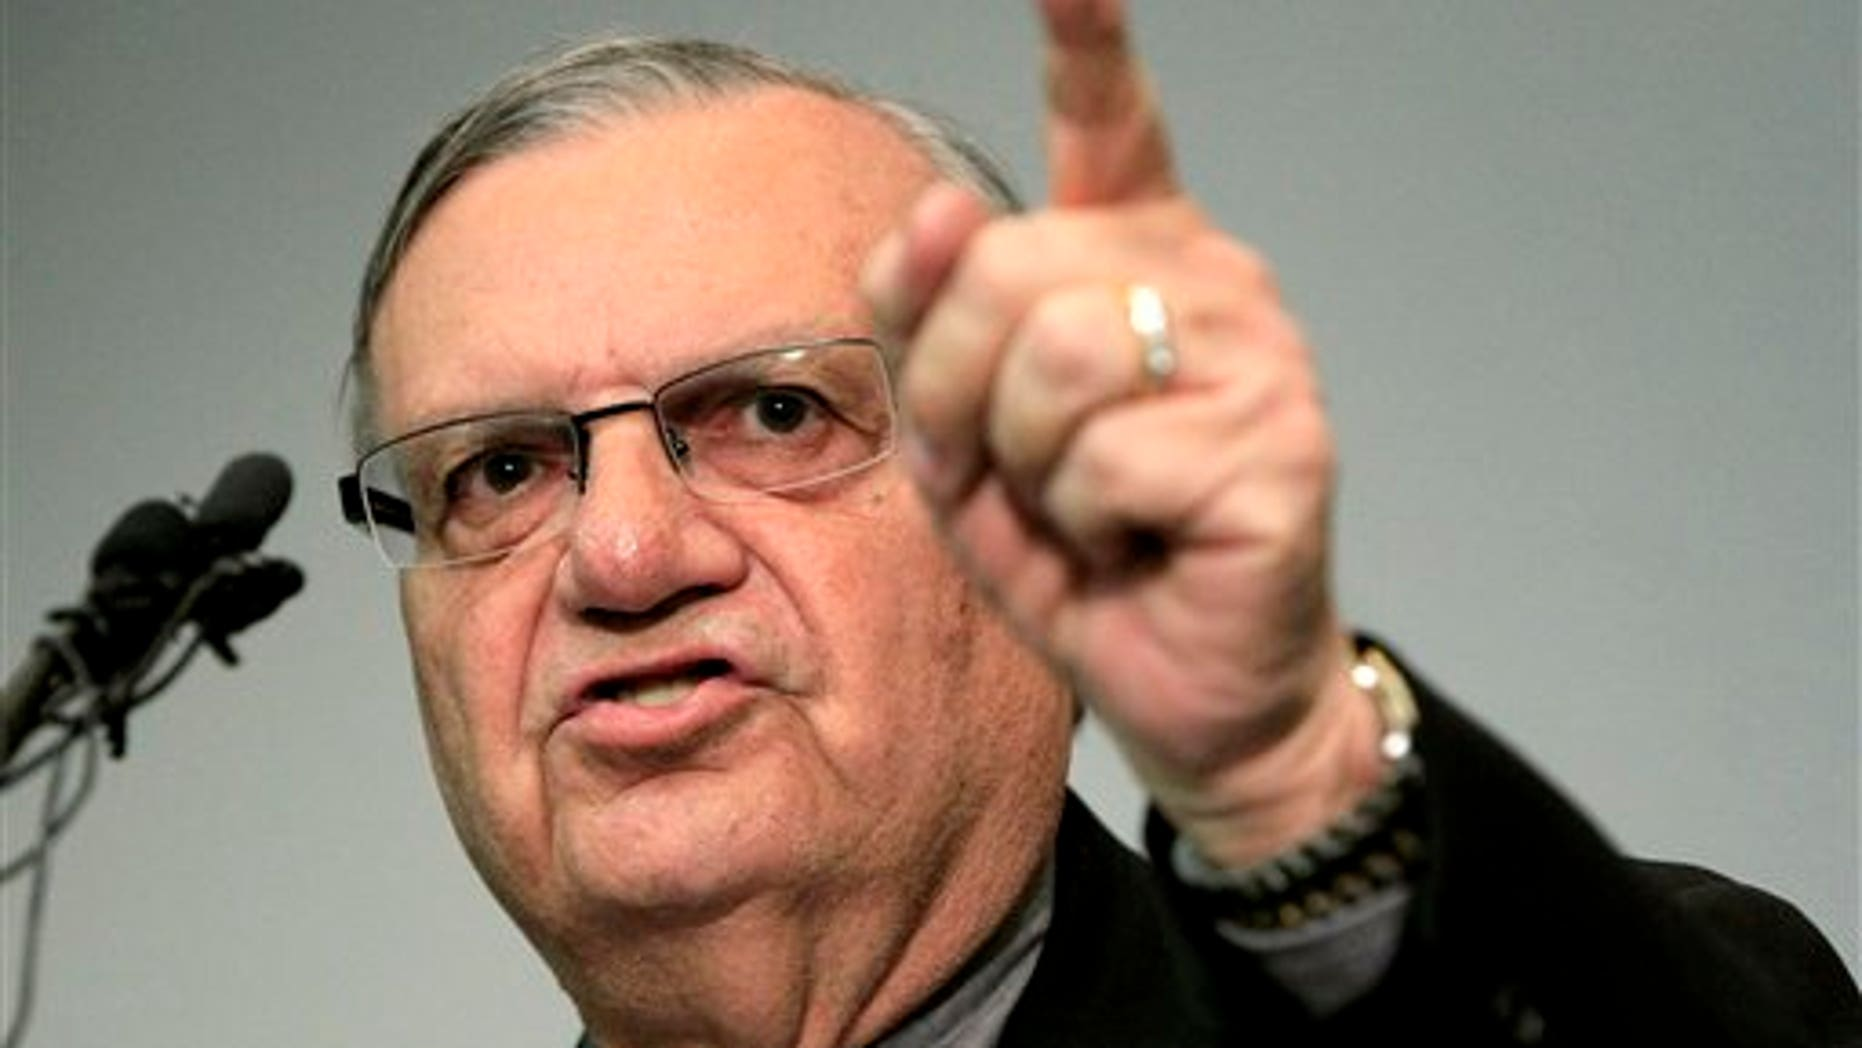 December 21, 2011: A defiant Maricopa County Sheriff Joe Arpaio speaks to the media before holding a ceremony where 92 of his immigration jail officers, who lost their federal power to check whether inmates are in the county illegally, turn in their credentials after federal officials pulled the Sheriff's office immigration enforcement powers.